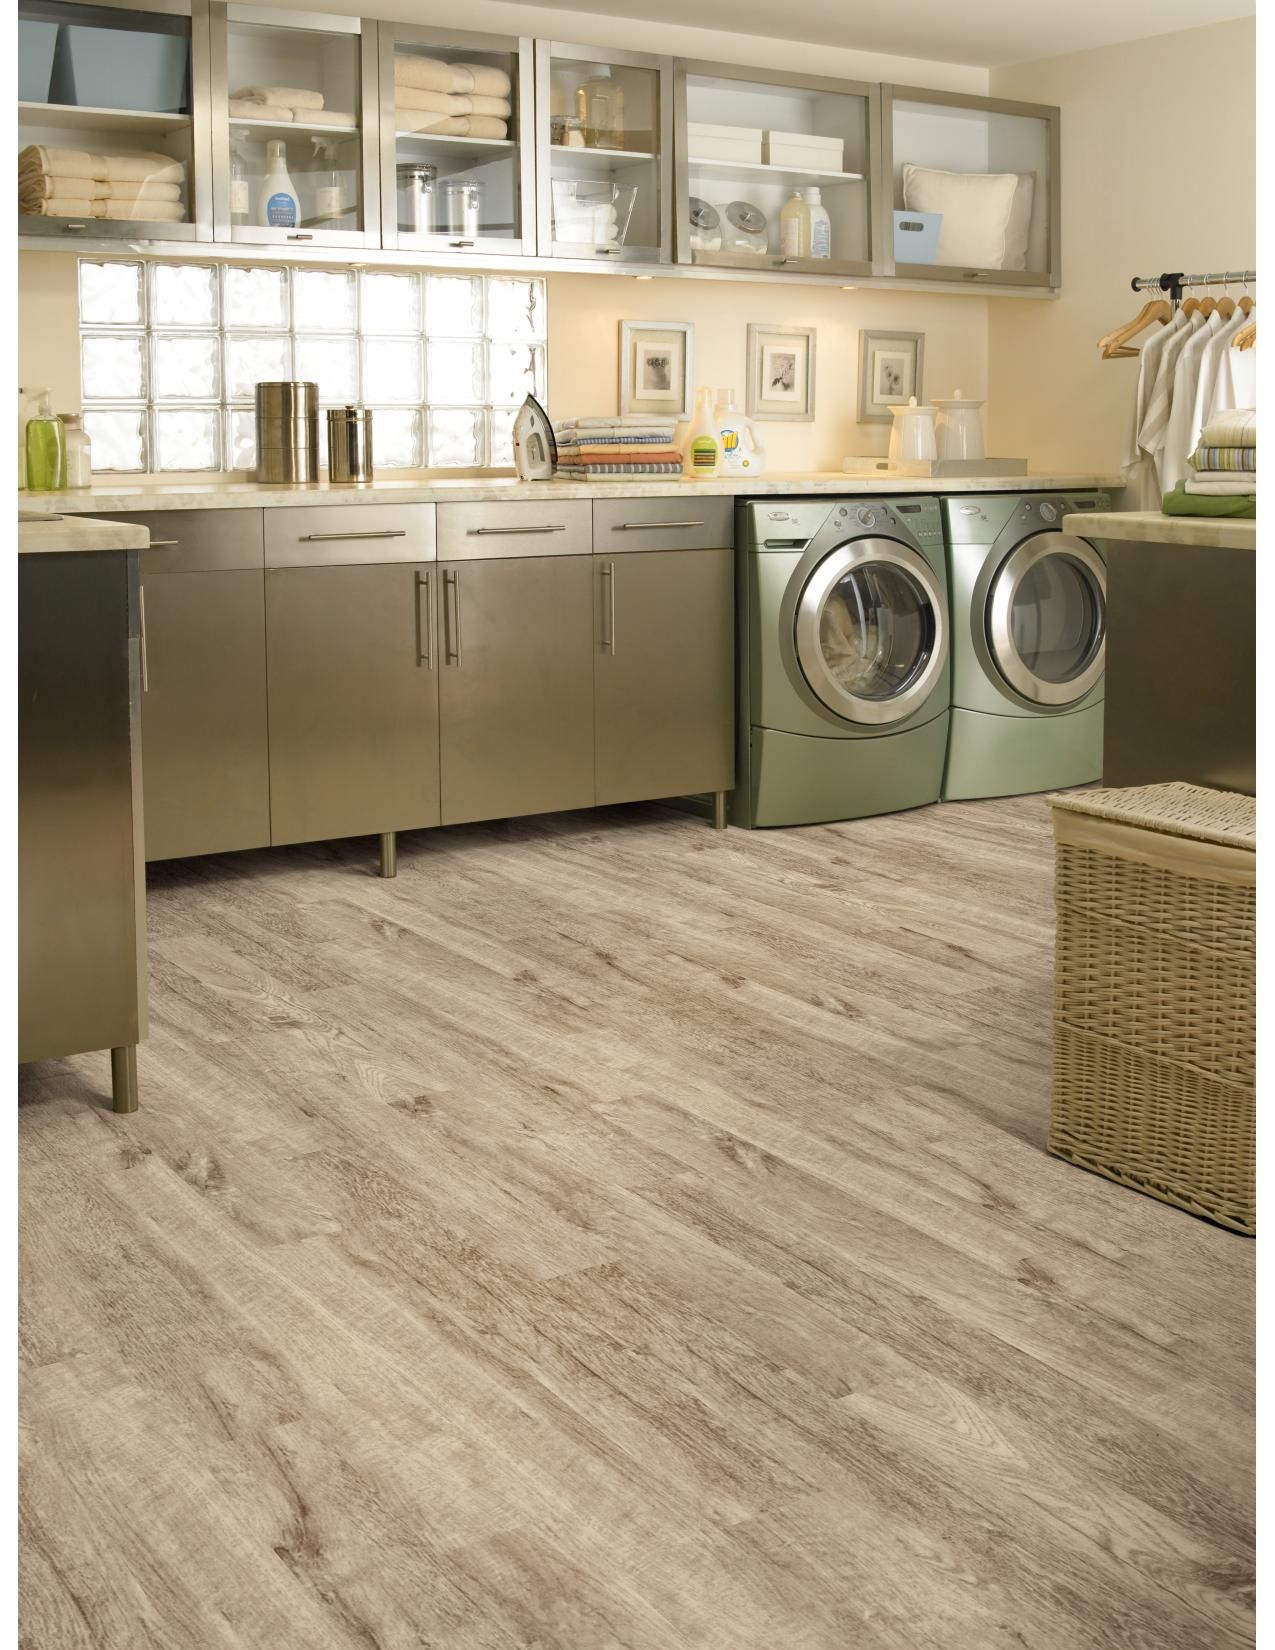 Downs h2o shaw sunwashed flooring from flooringamerica vinyl flooring is great where you need durability and in high moisture areas shop luxury vinyl tile and plank flooring at carpet one dailygadgetfo Gallery